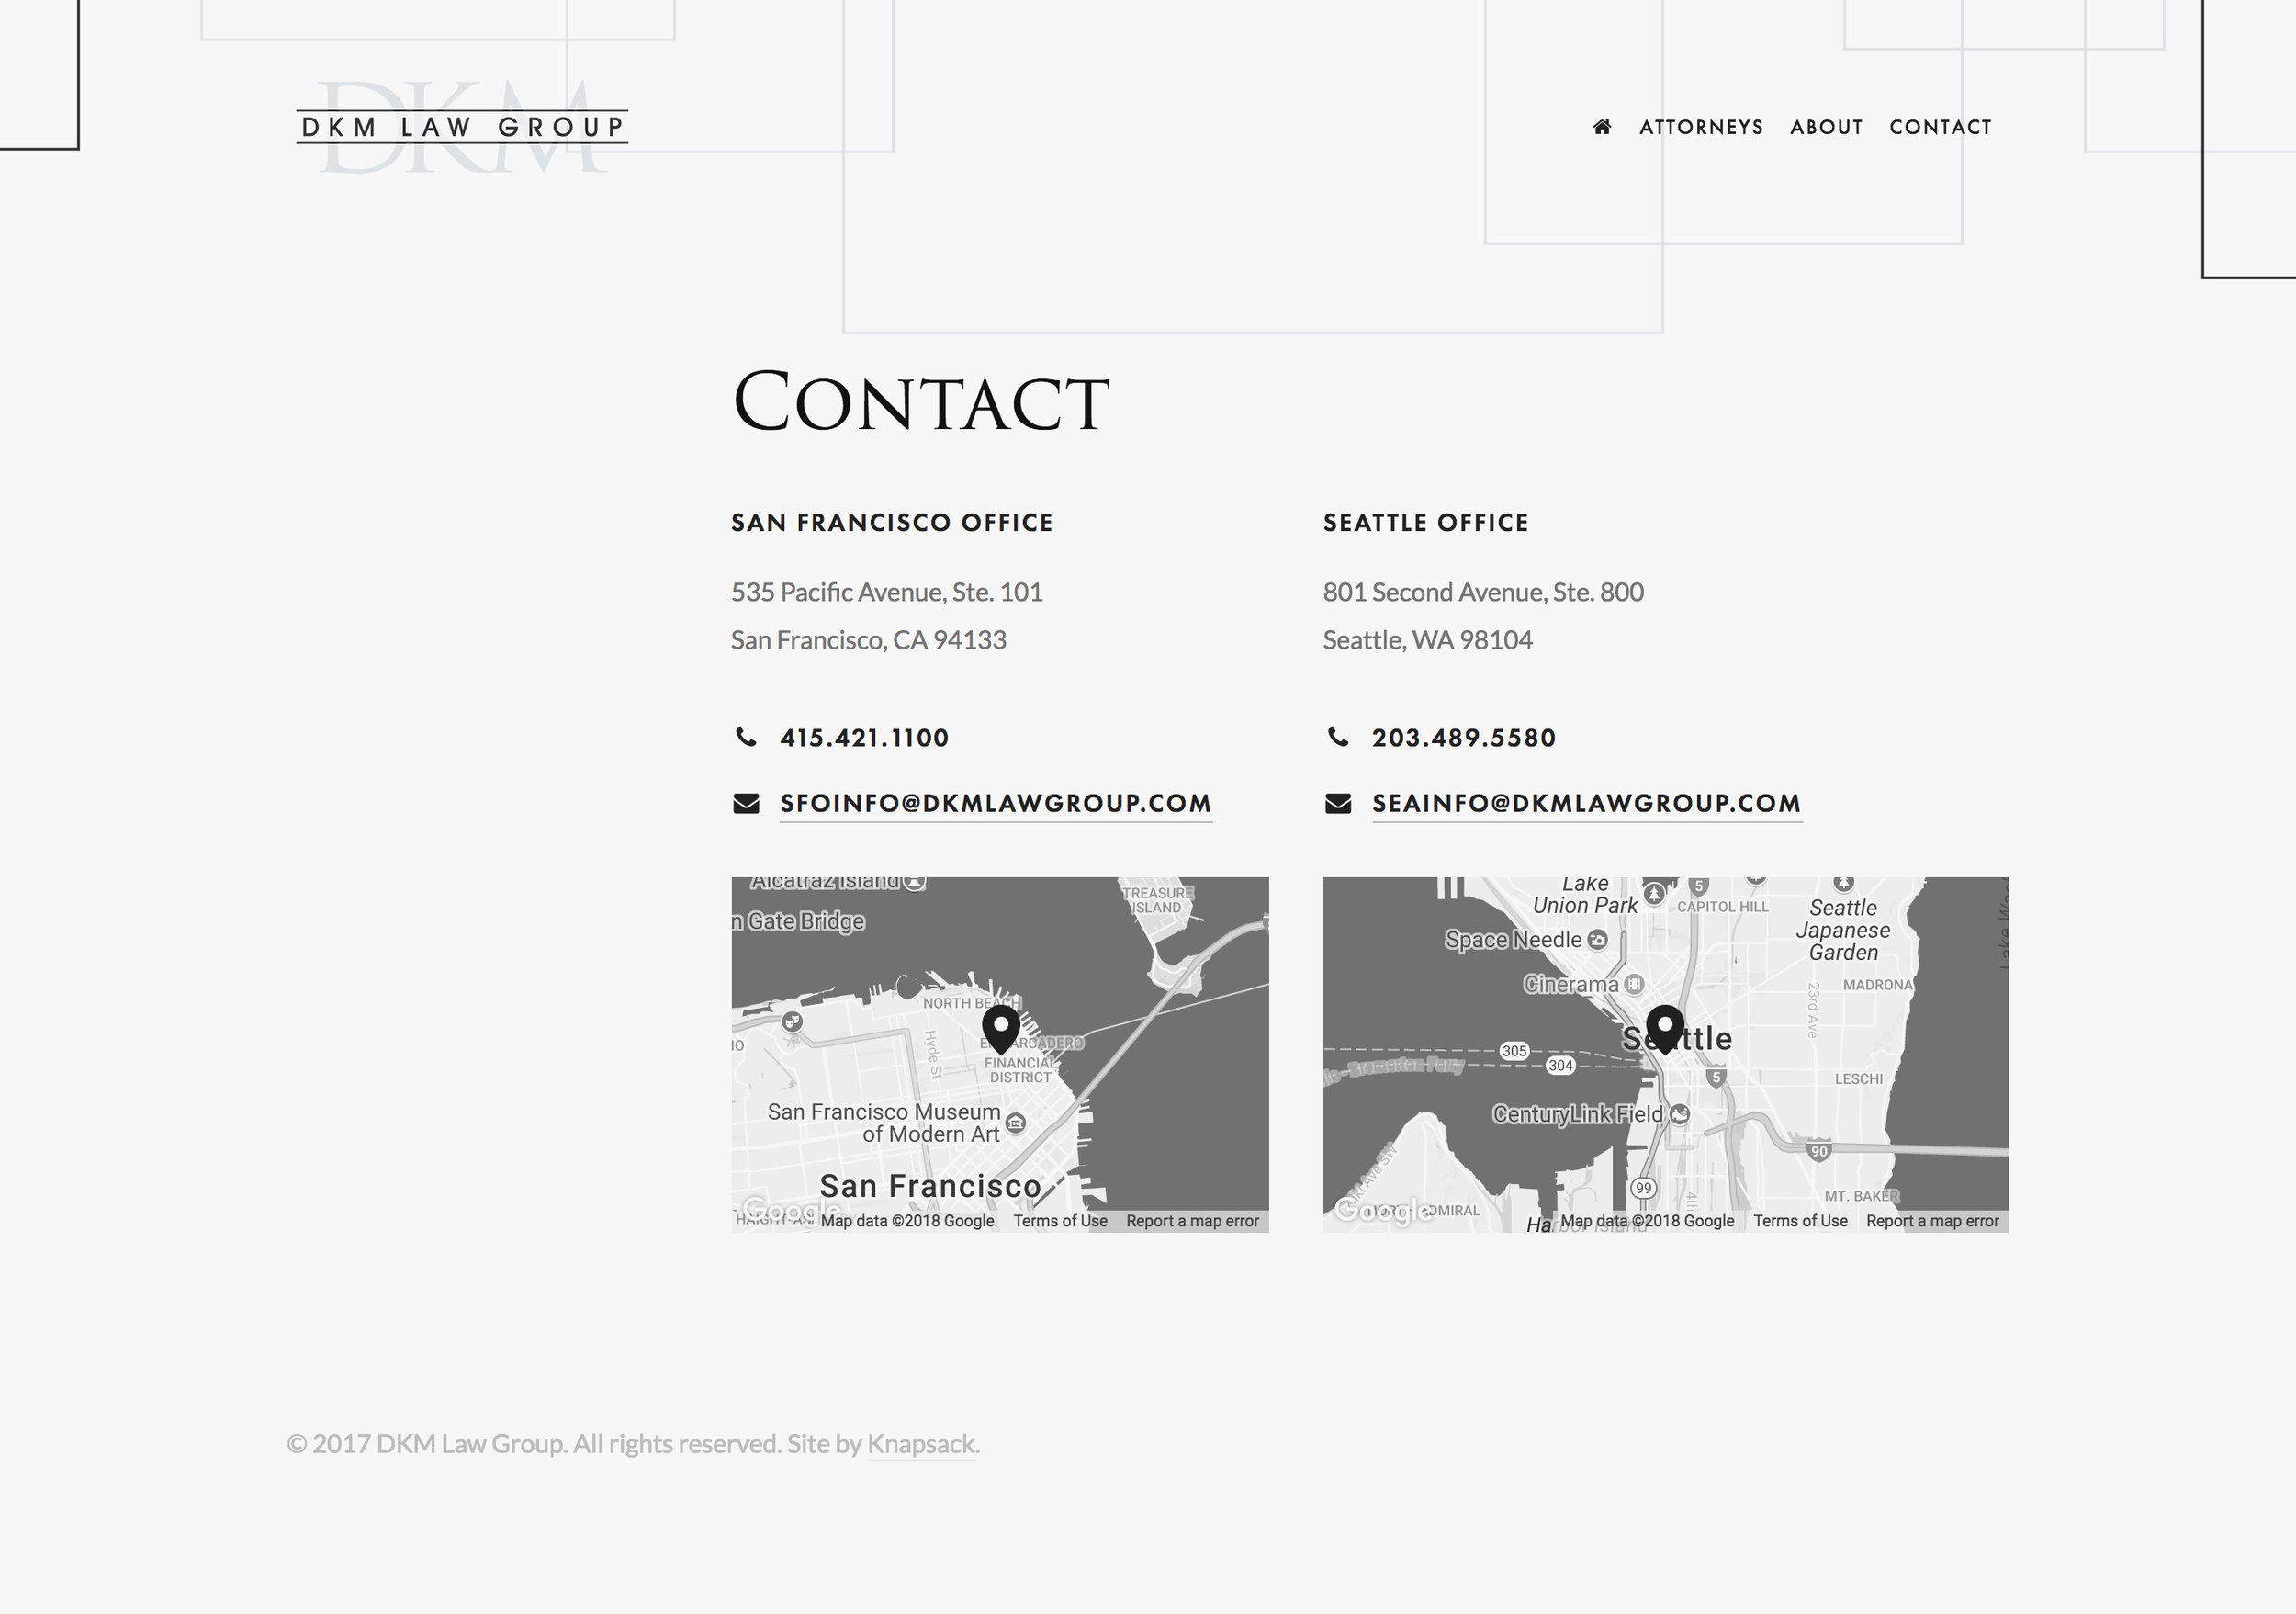 dkm-law-group-contact.jpg